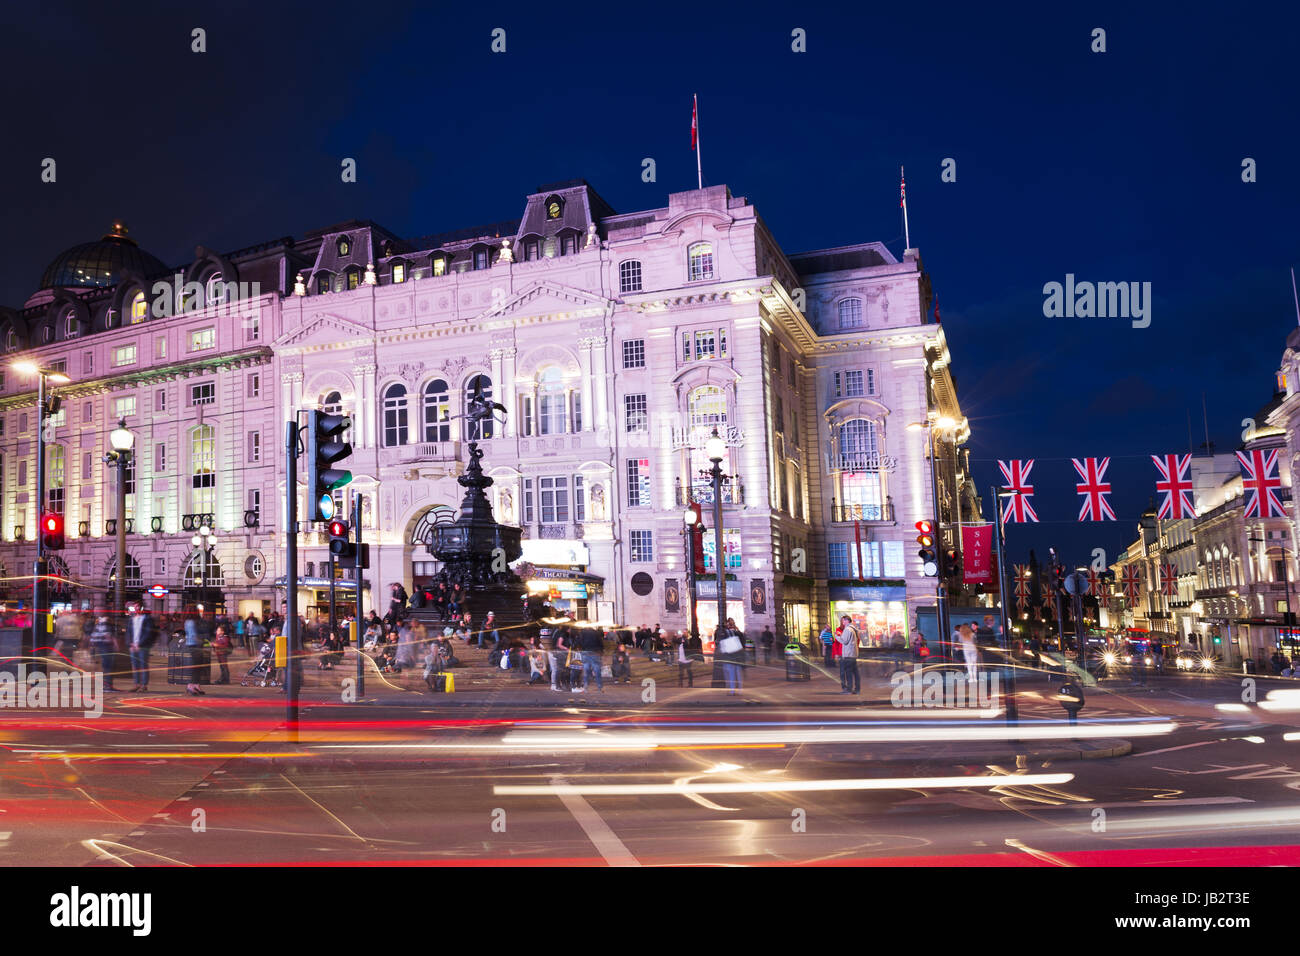 Popular tourist Picadilly circus with flags union jack in night lights illumination in London, England, United Kingdom - Stock Image